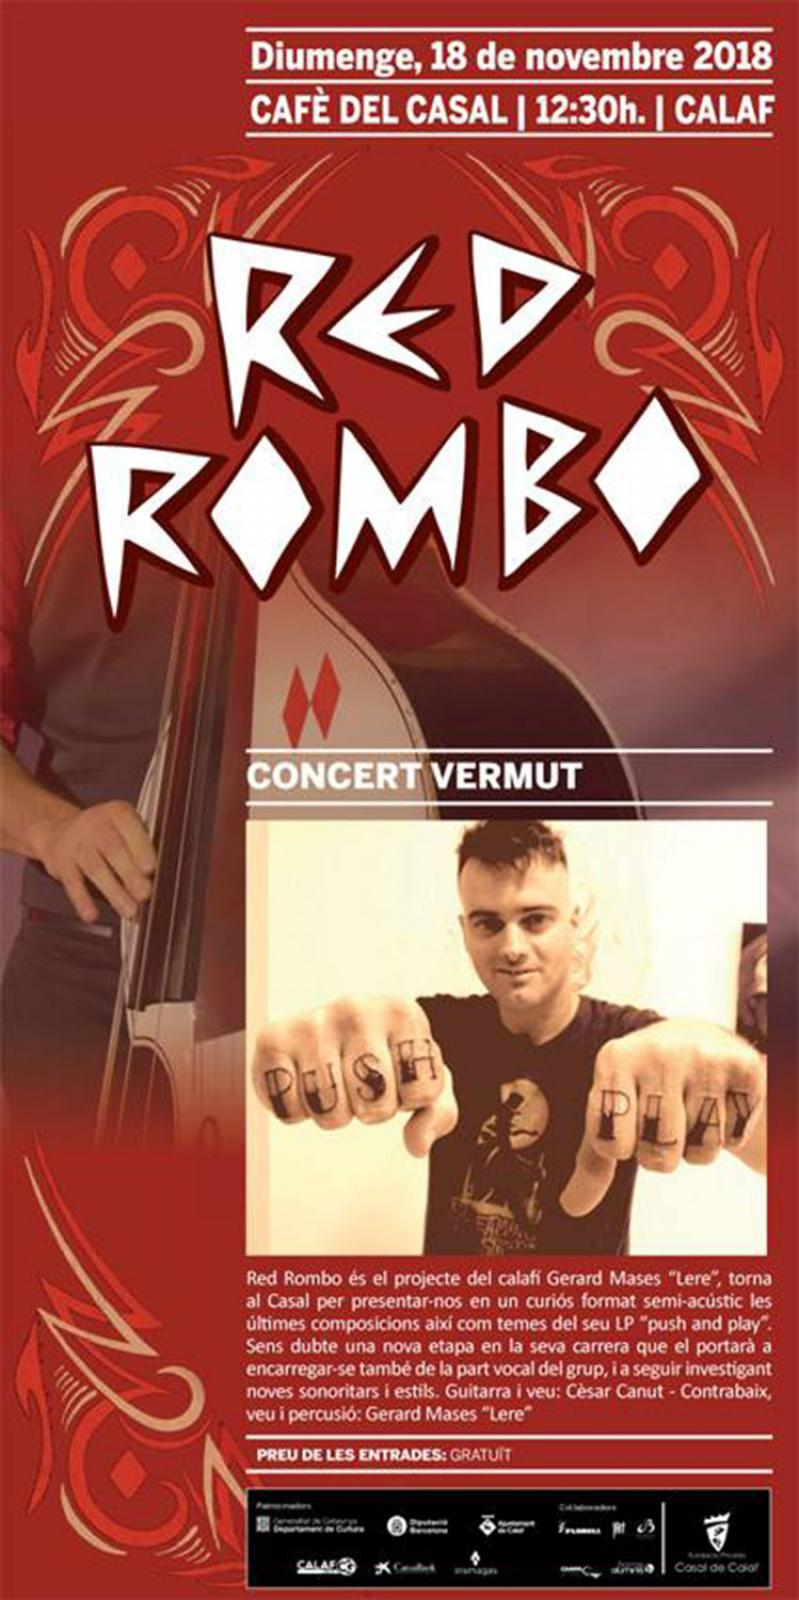 Concert vermut amb Red Rombo